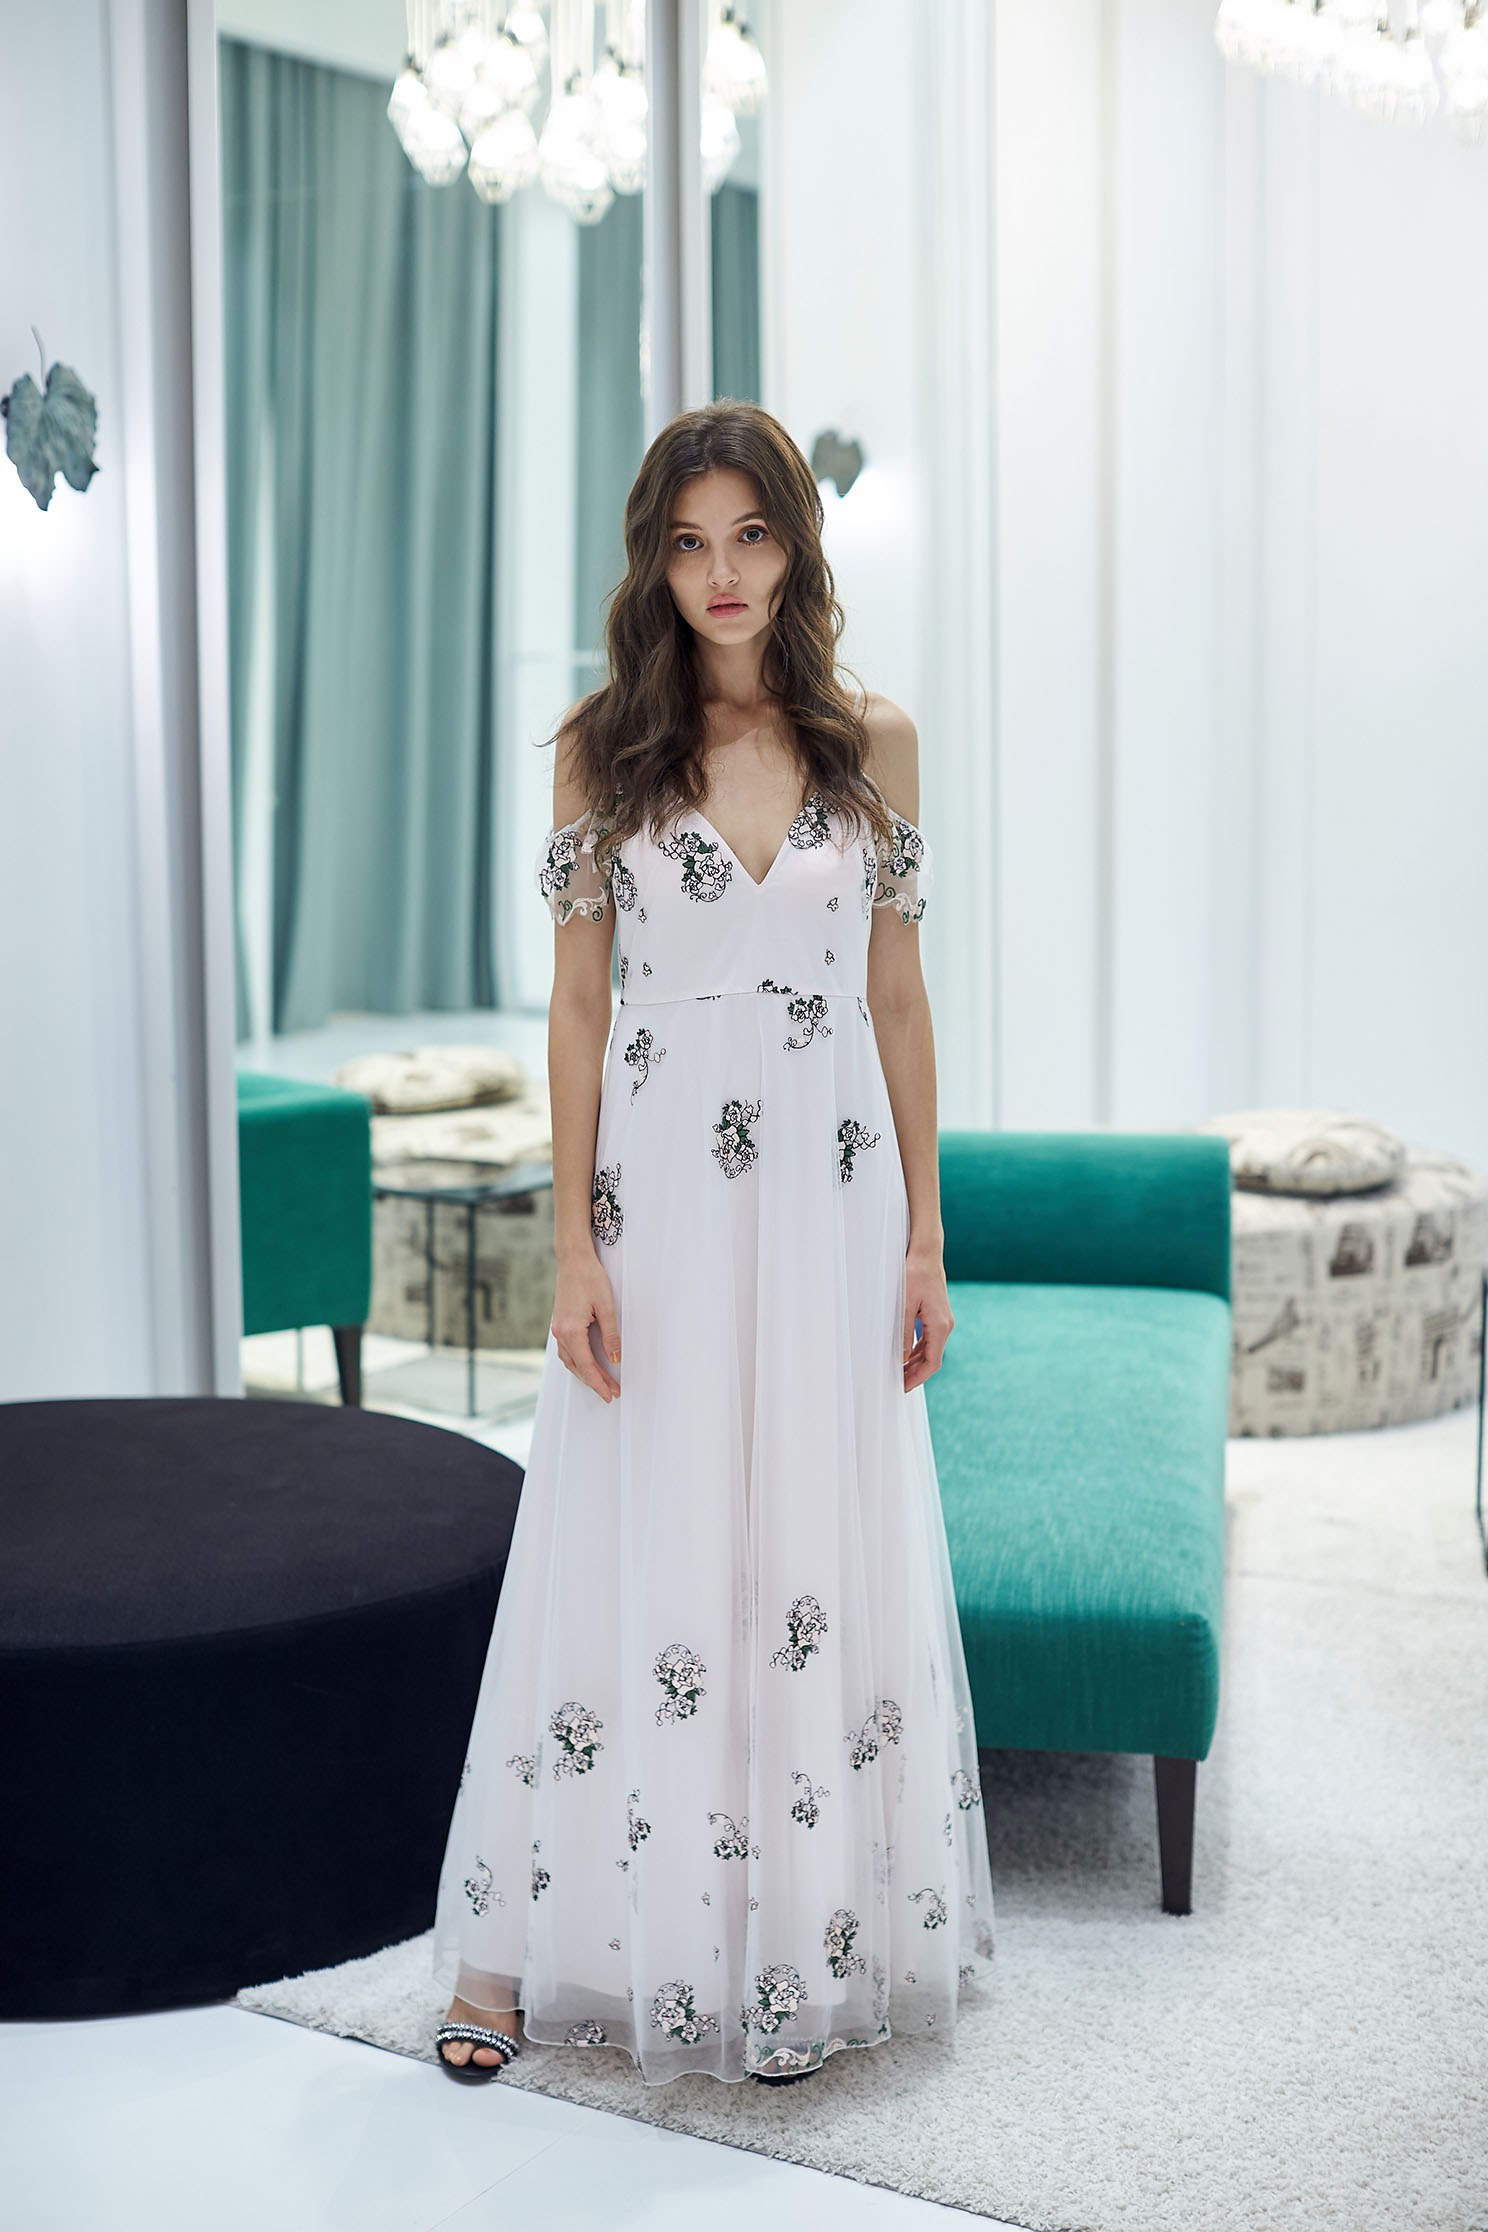 Romantic floral embroidery chiffon dress,V-neck dress,embroidery,刺繡洋裝,Cocktail Dress,無袖洋裝,Evening Wear,embroidered,Long dress,Chiffon,Chiffon Dress